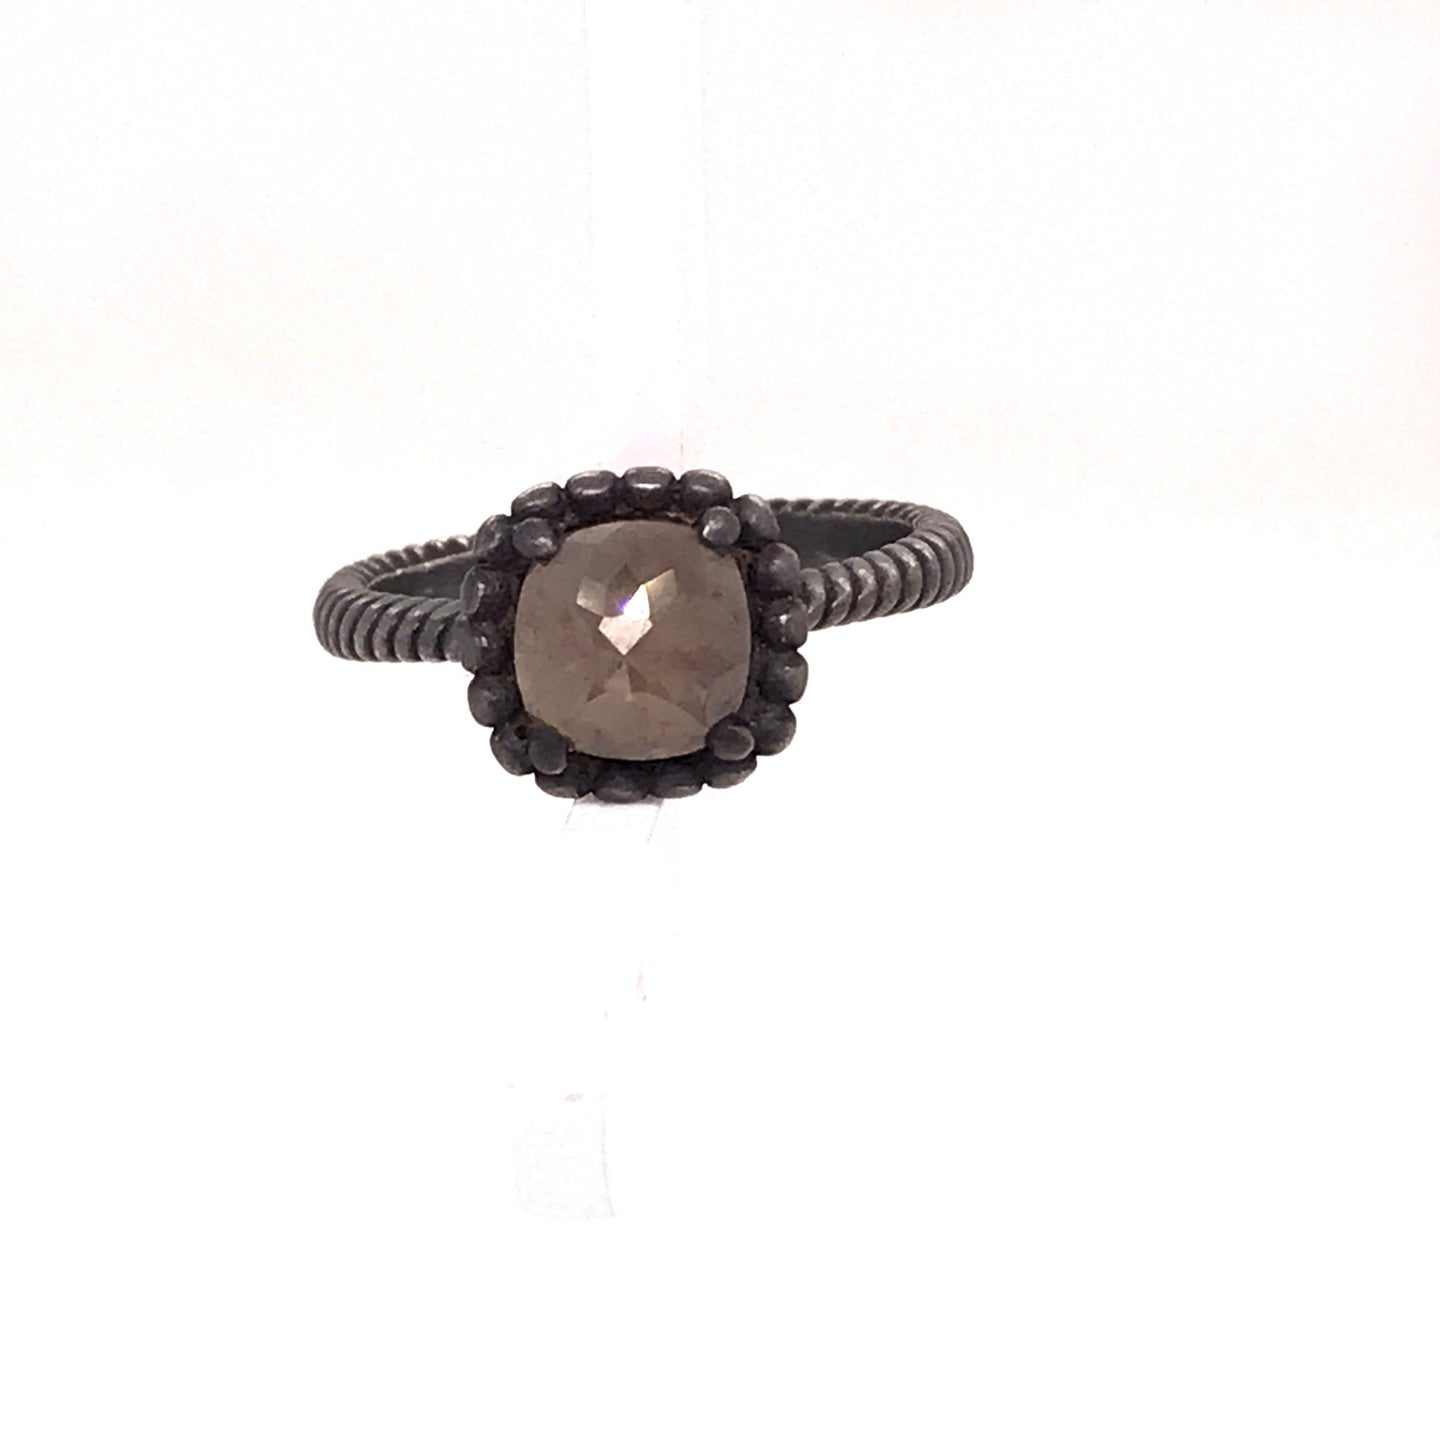 Oxidized Silver Brown Cushion Cut Diamond Ring With Beaded Bezel